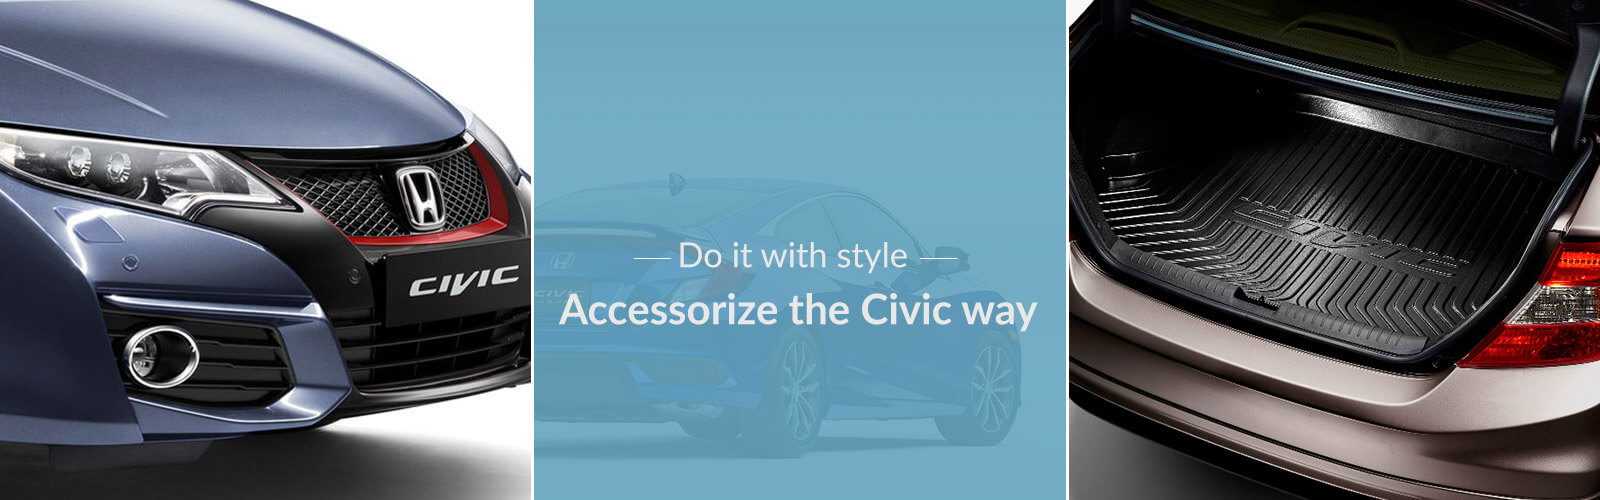 Civic Accessories